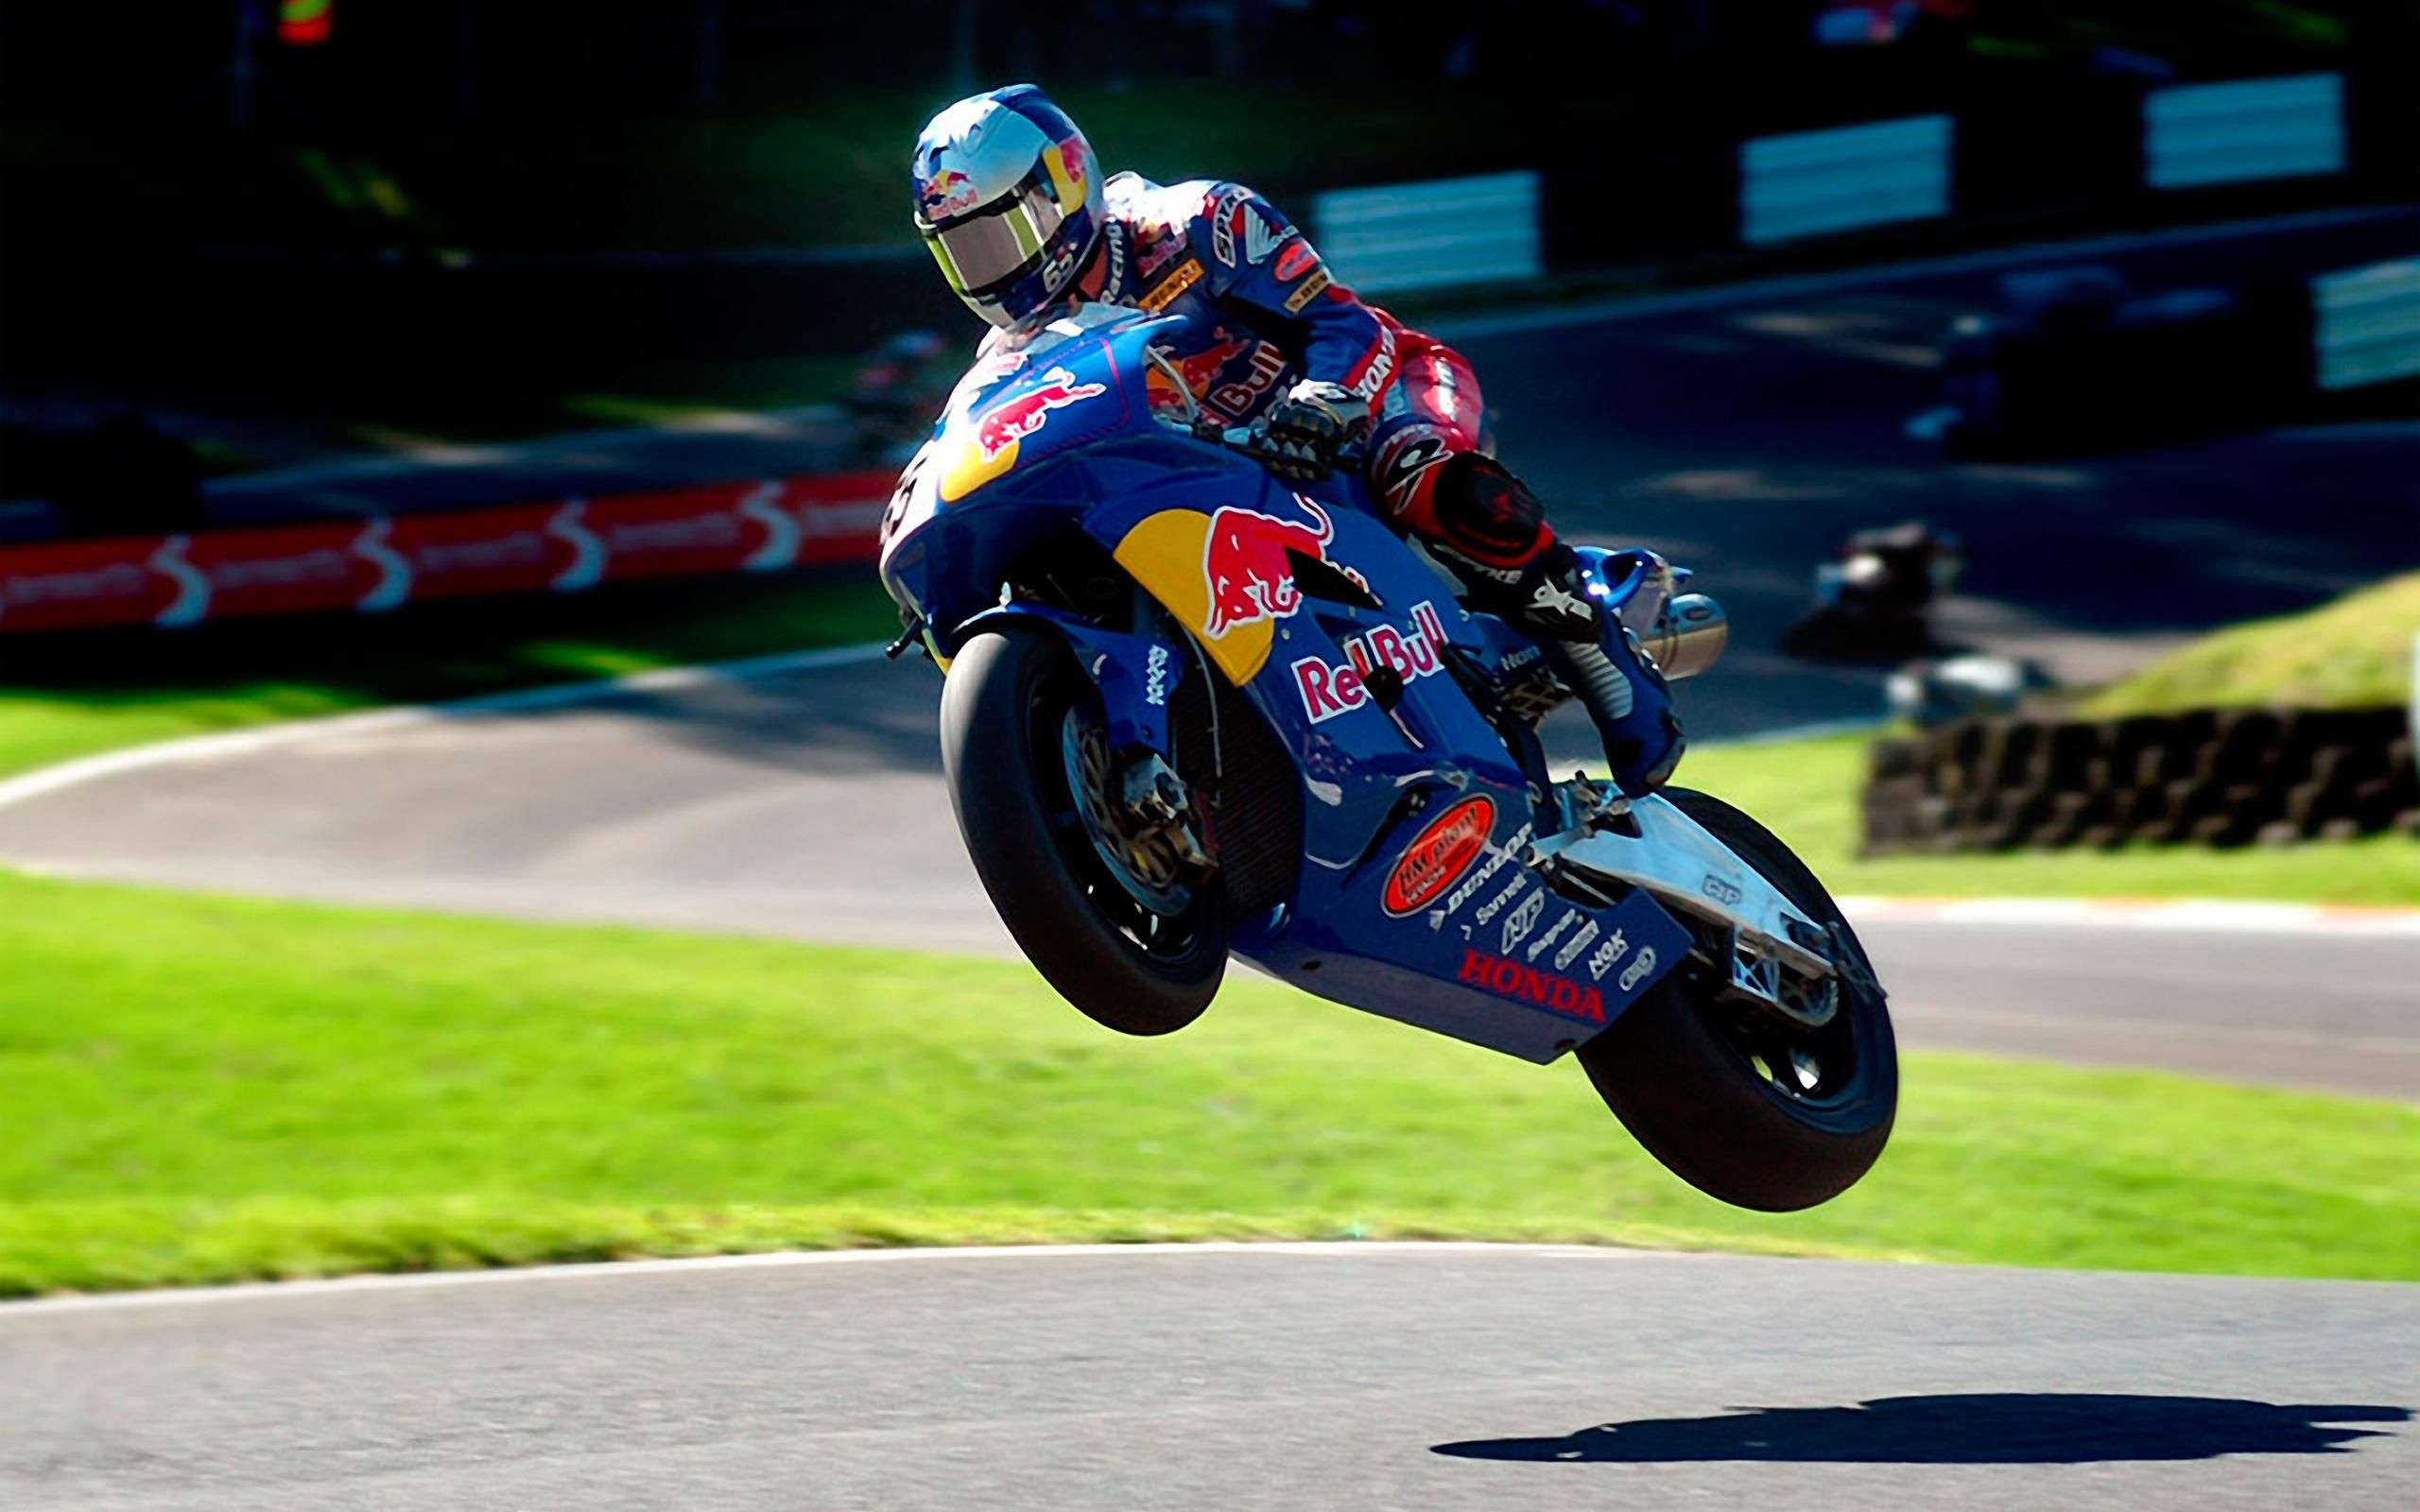 Red Bull Makes You Fly Source Wallpapers Hd App With Images